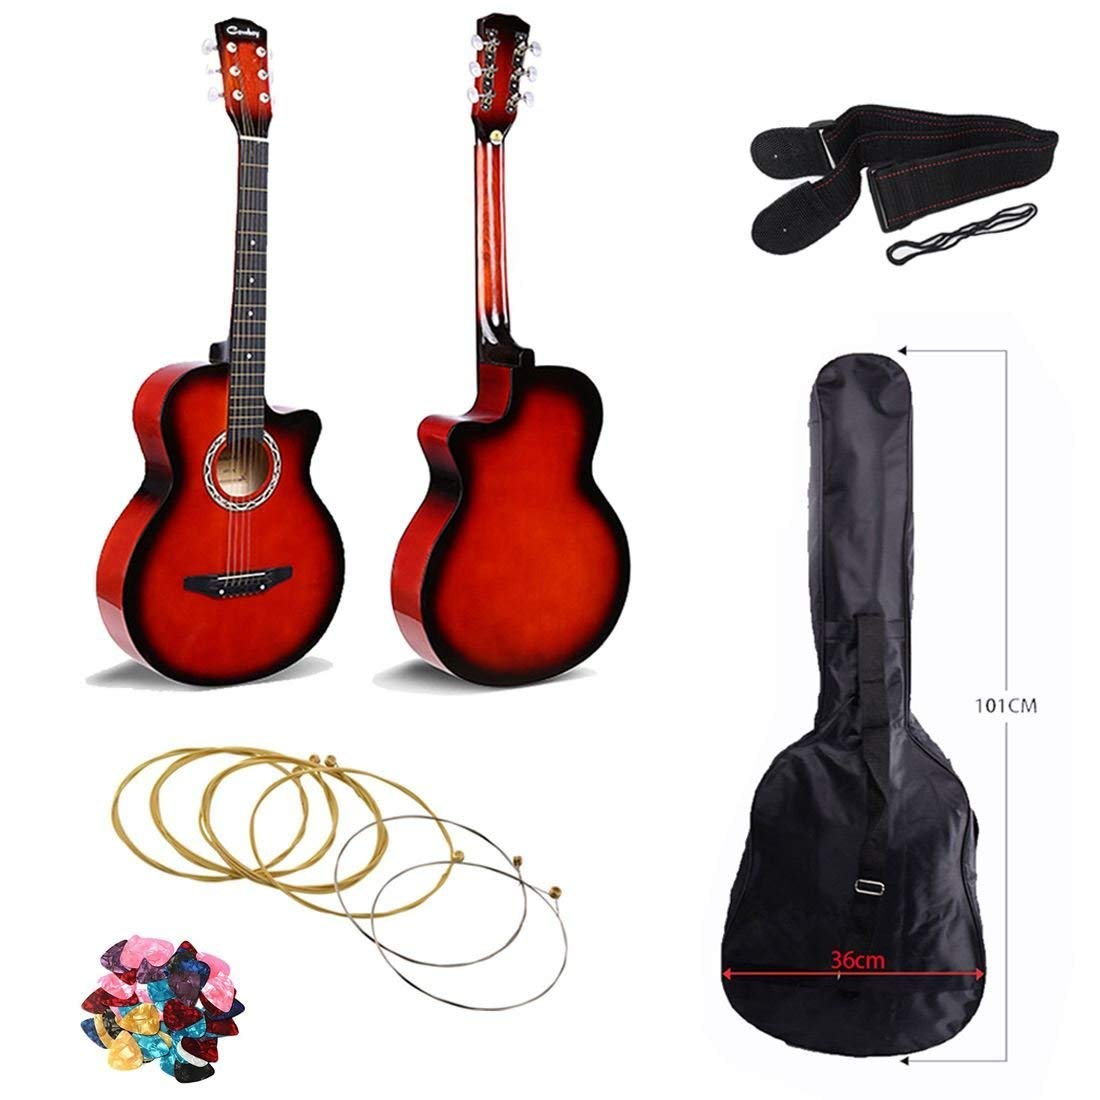 Cowboy 38 inches Acoustic Guitar with Cutaway Design Comes With Guitar Bag, Strap, Guitar Picks and an extra set of 6 strings – Red Color Kanadian CWBY-RD1